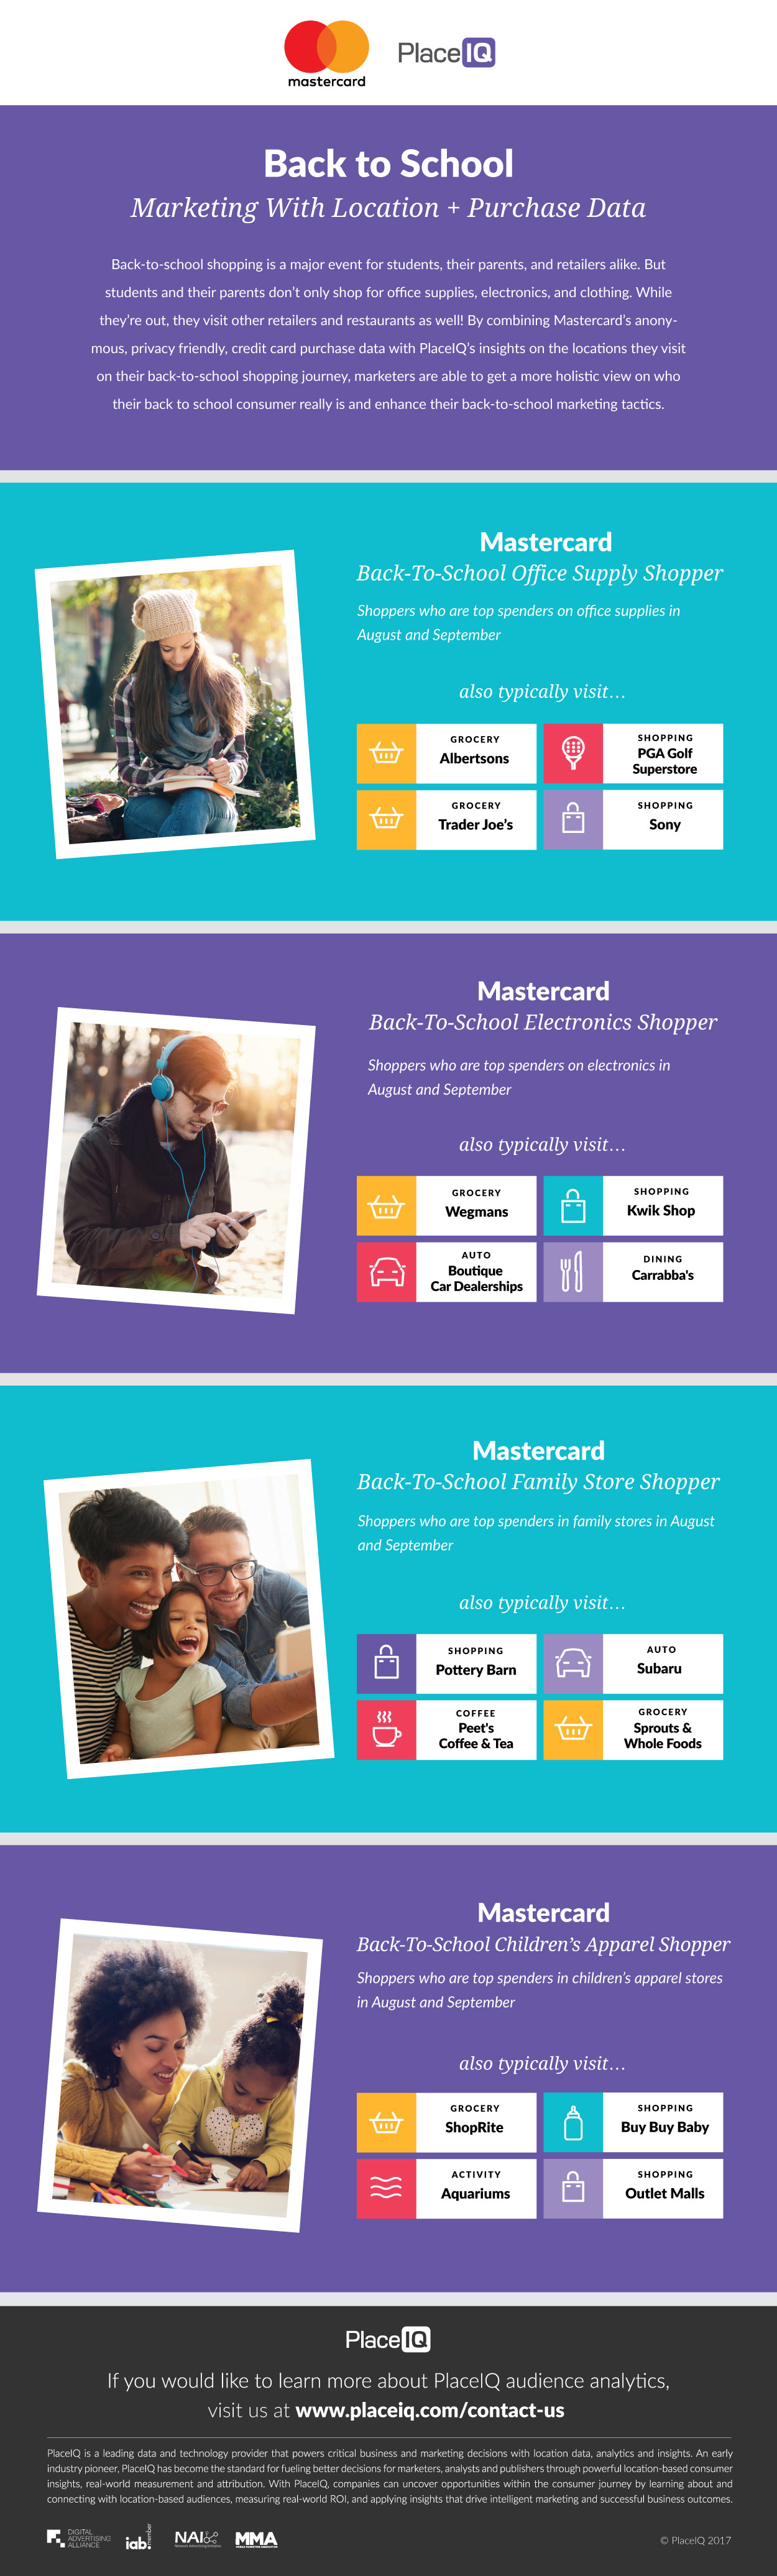 INFOGRAPHIC: Back to School - Marketing with location + Purchase Data